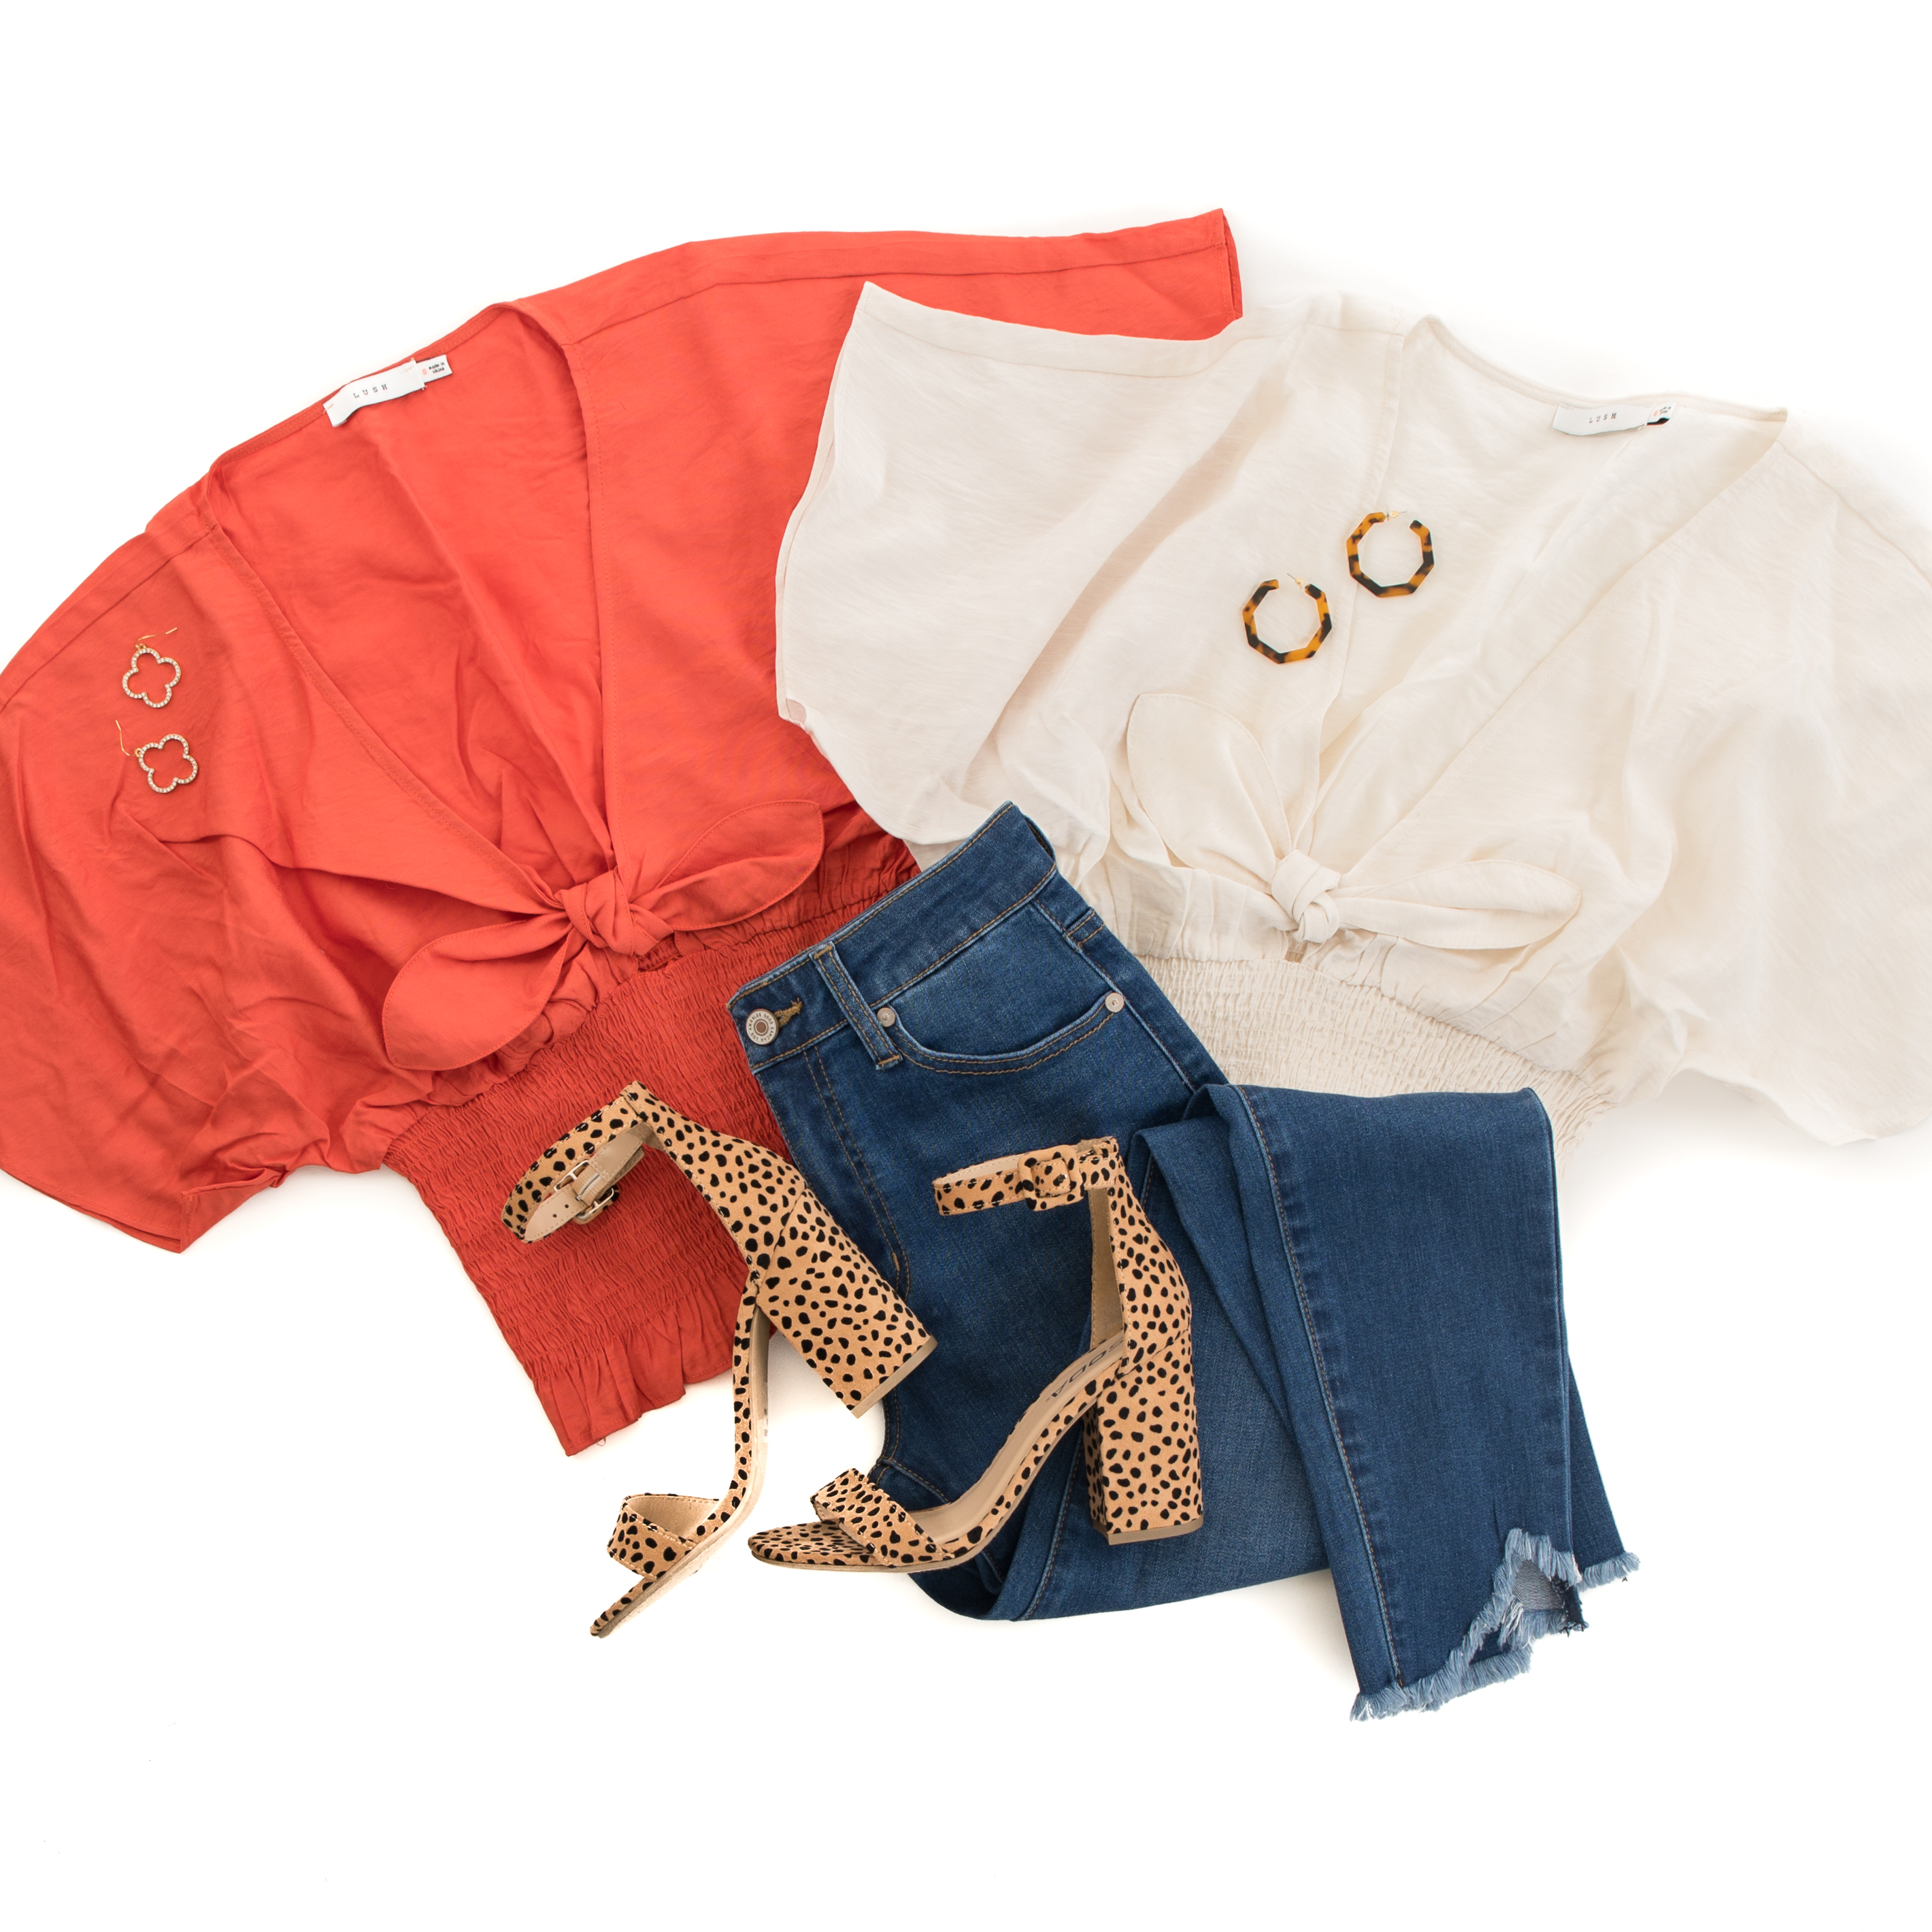 Terracotta Smocked Crop Top with Short Sleeves and Front Tie